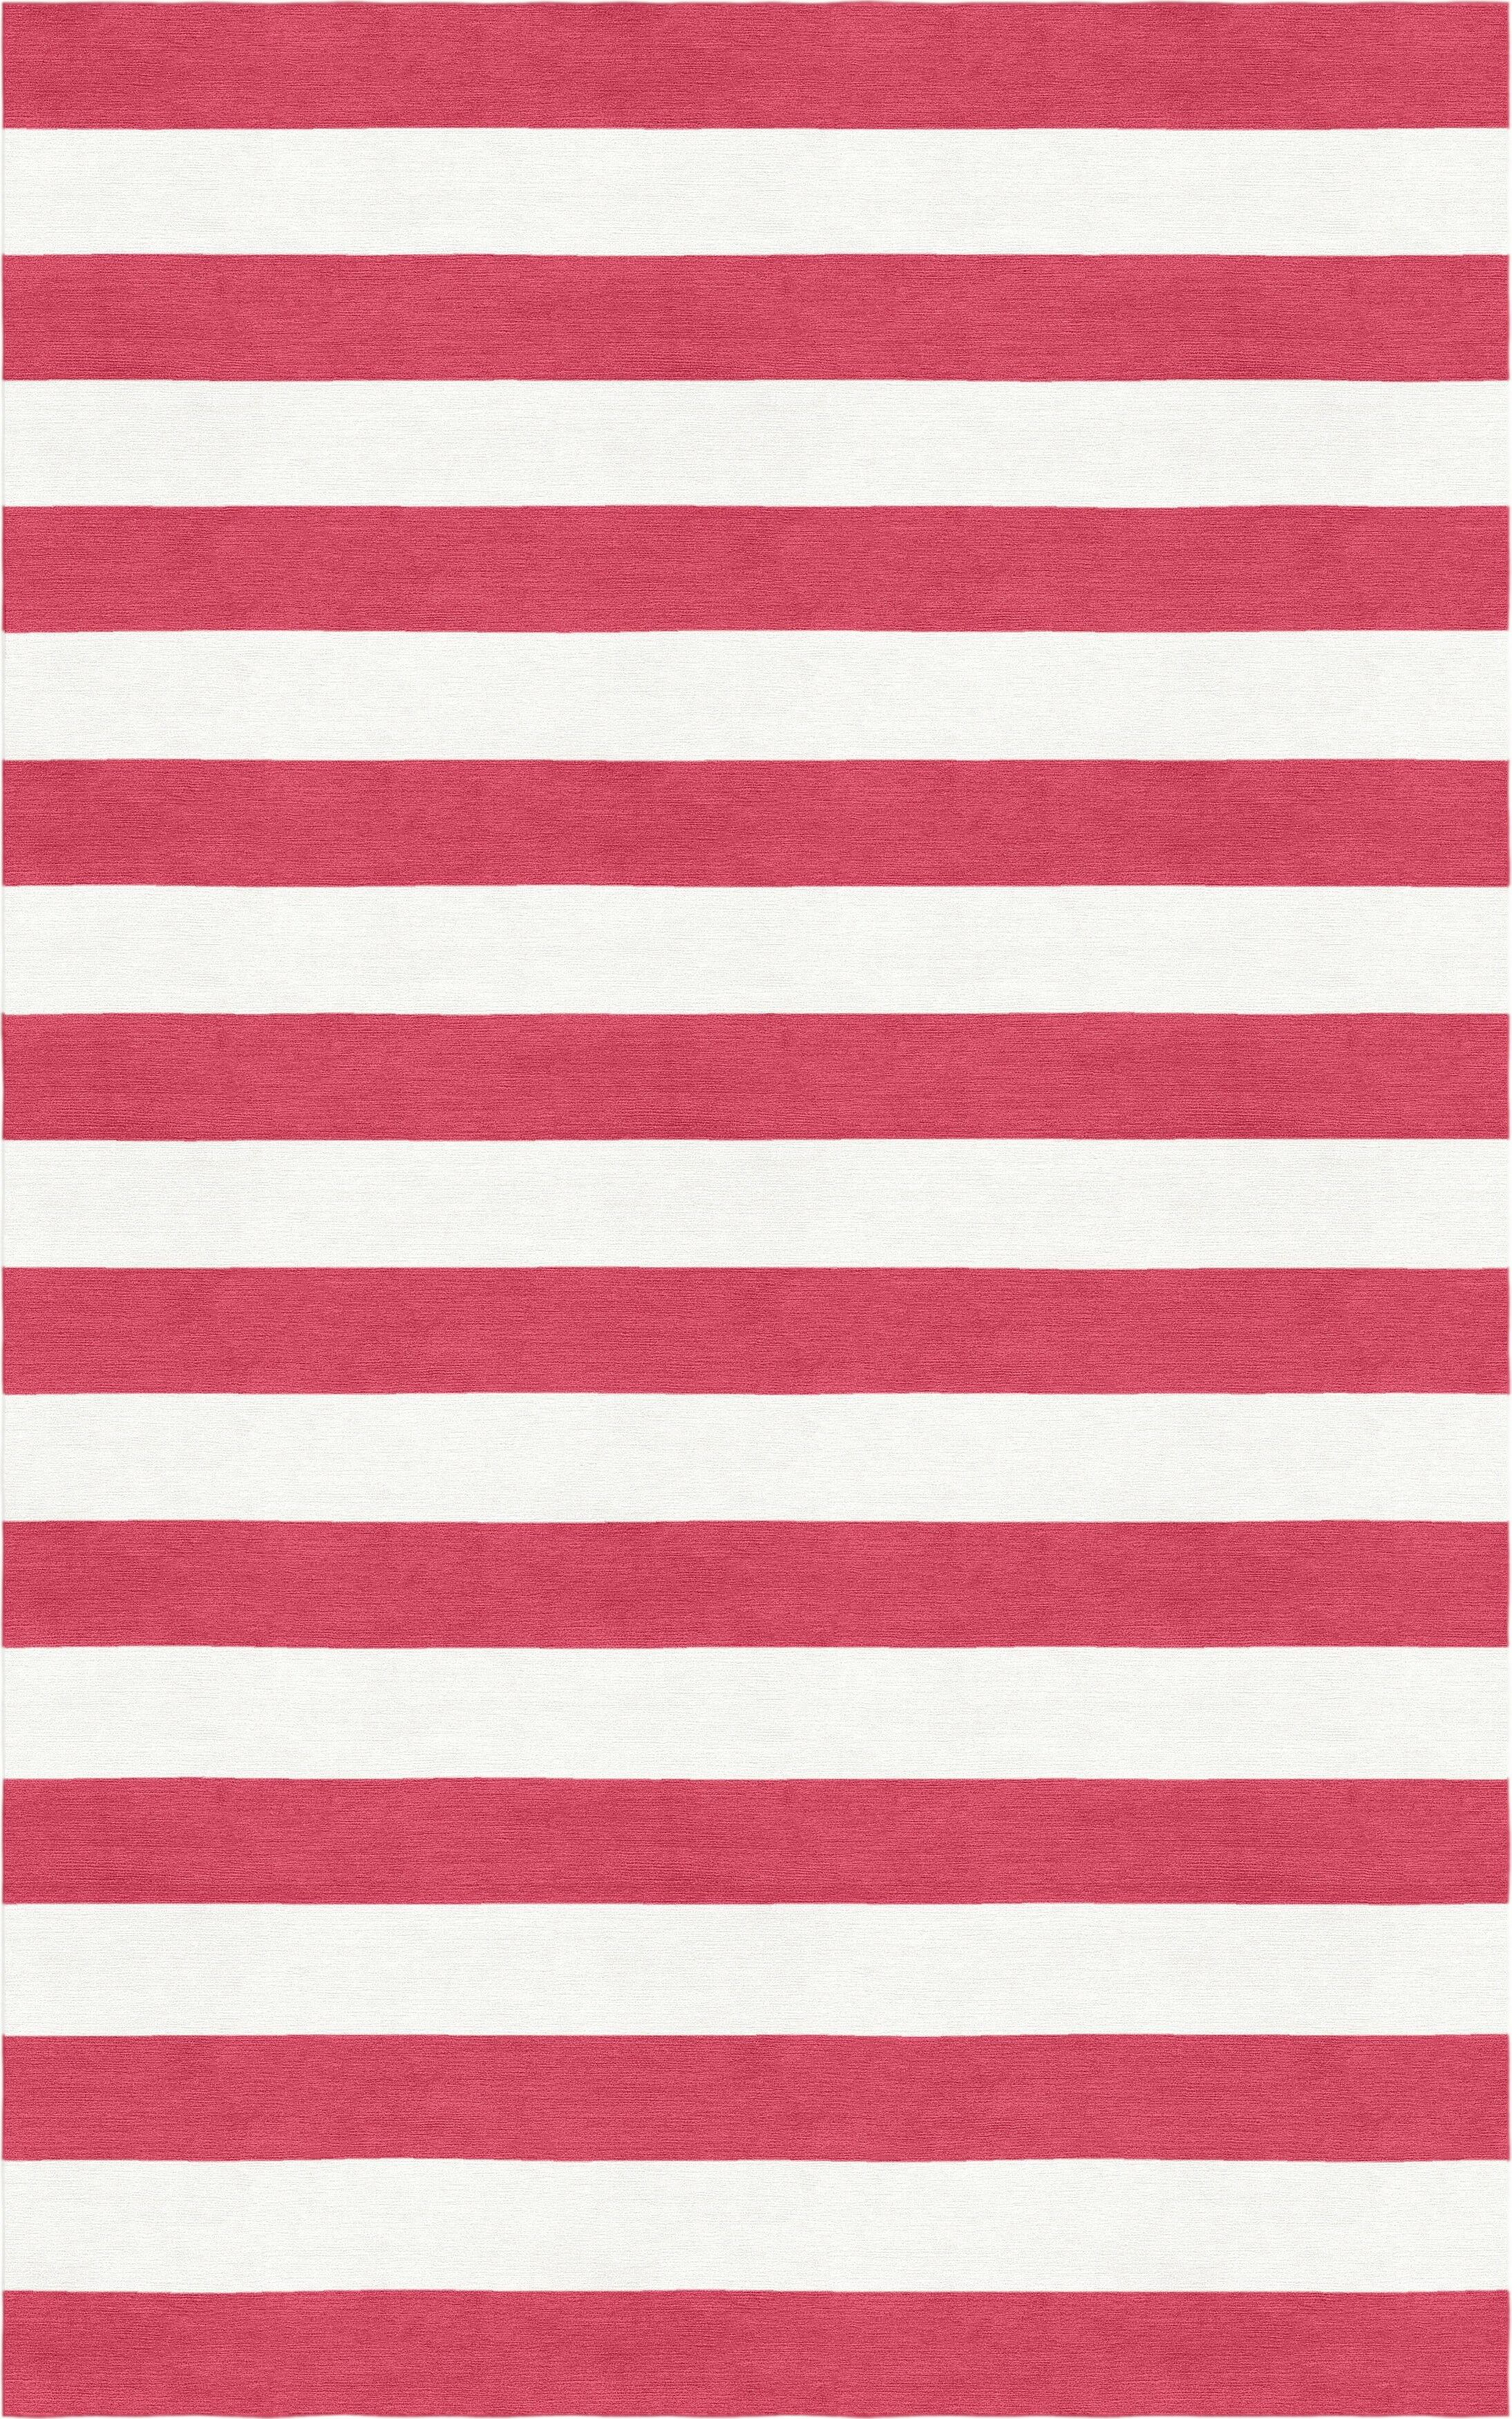 Rauseo Stripe Hand-Tufted Wool Red/White Area Rug Rug Size: Rectangle 8' x 10'